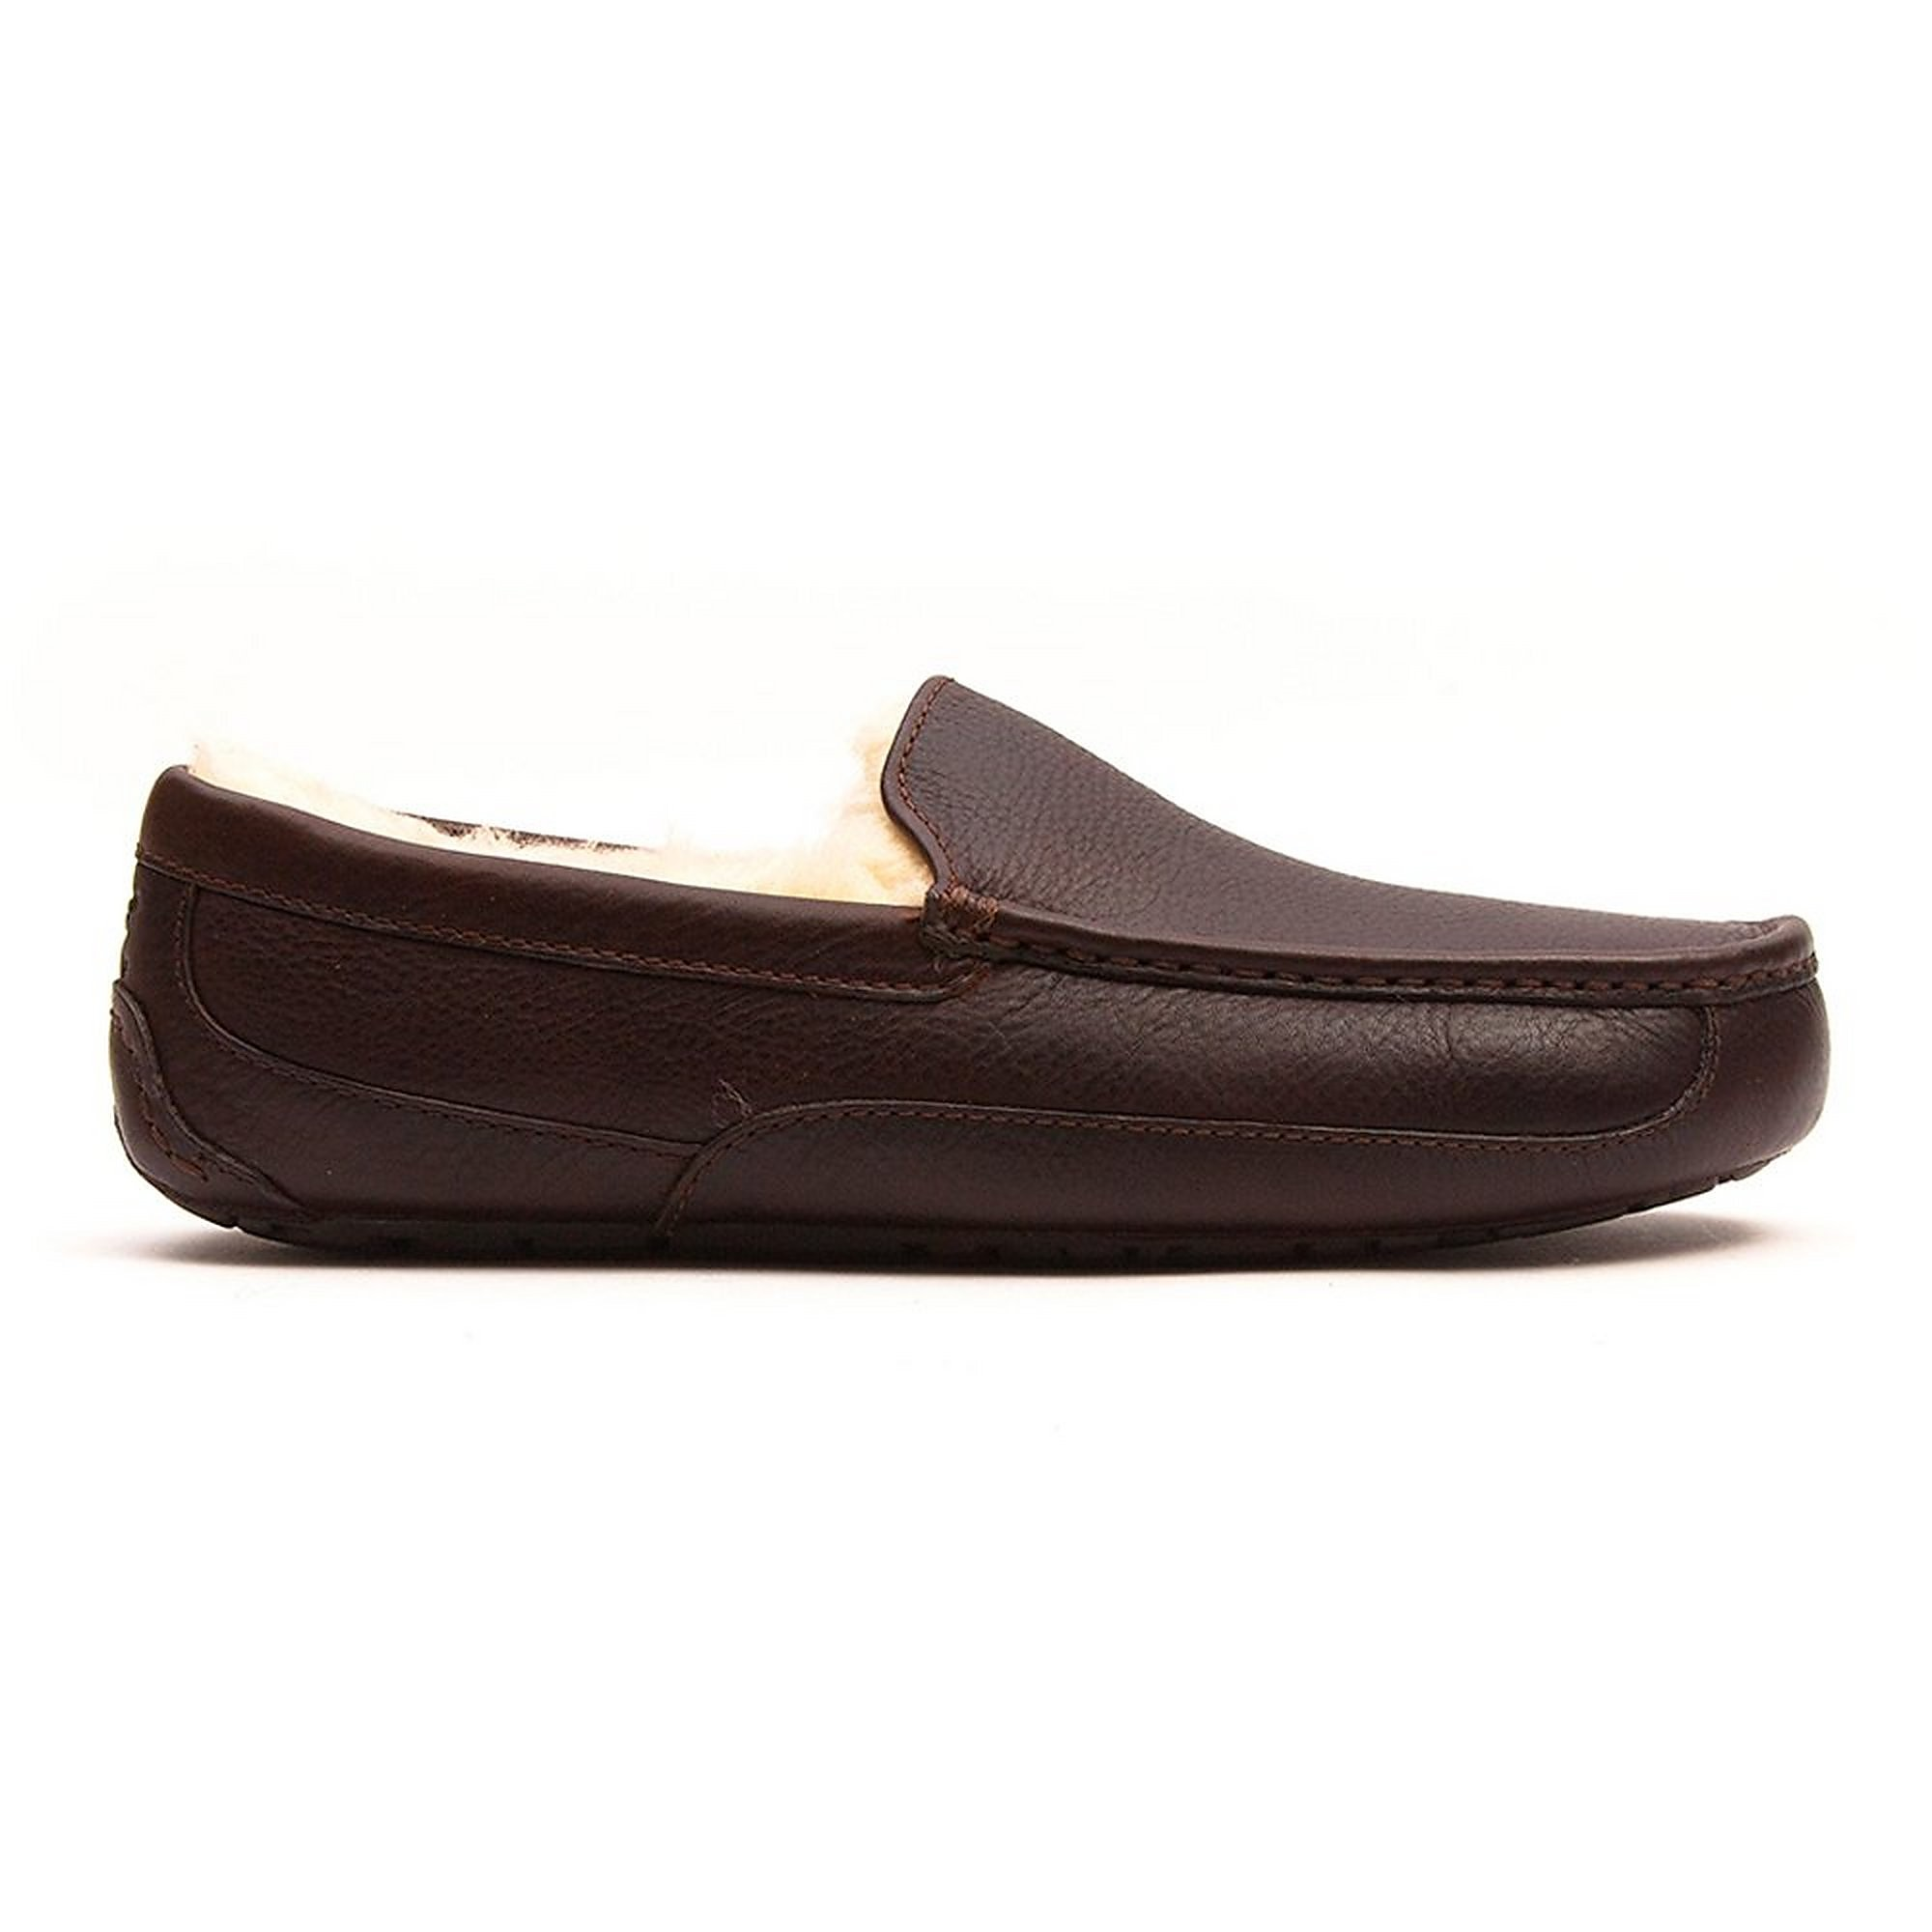 UGG Men's Ascot Slippers - China Tea Leather